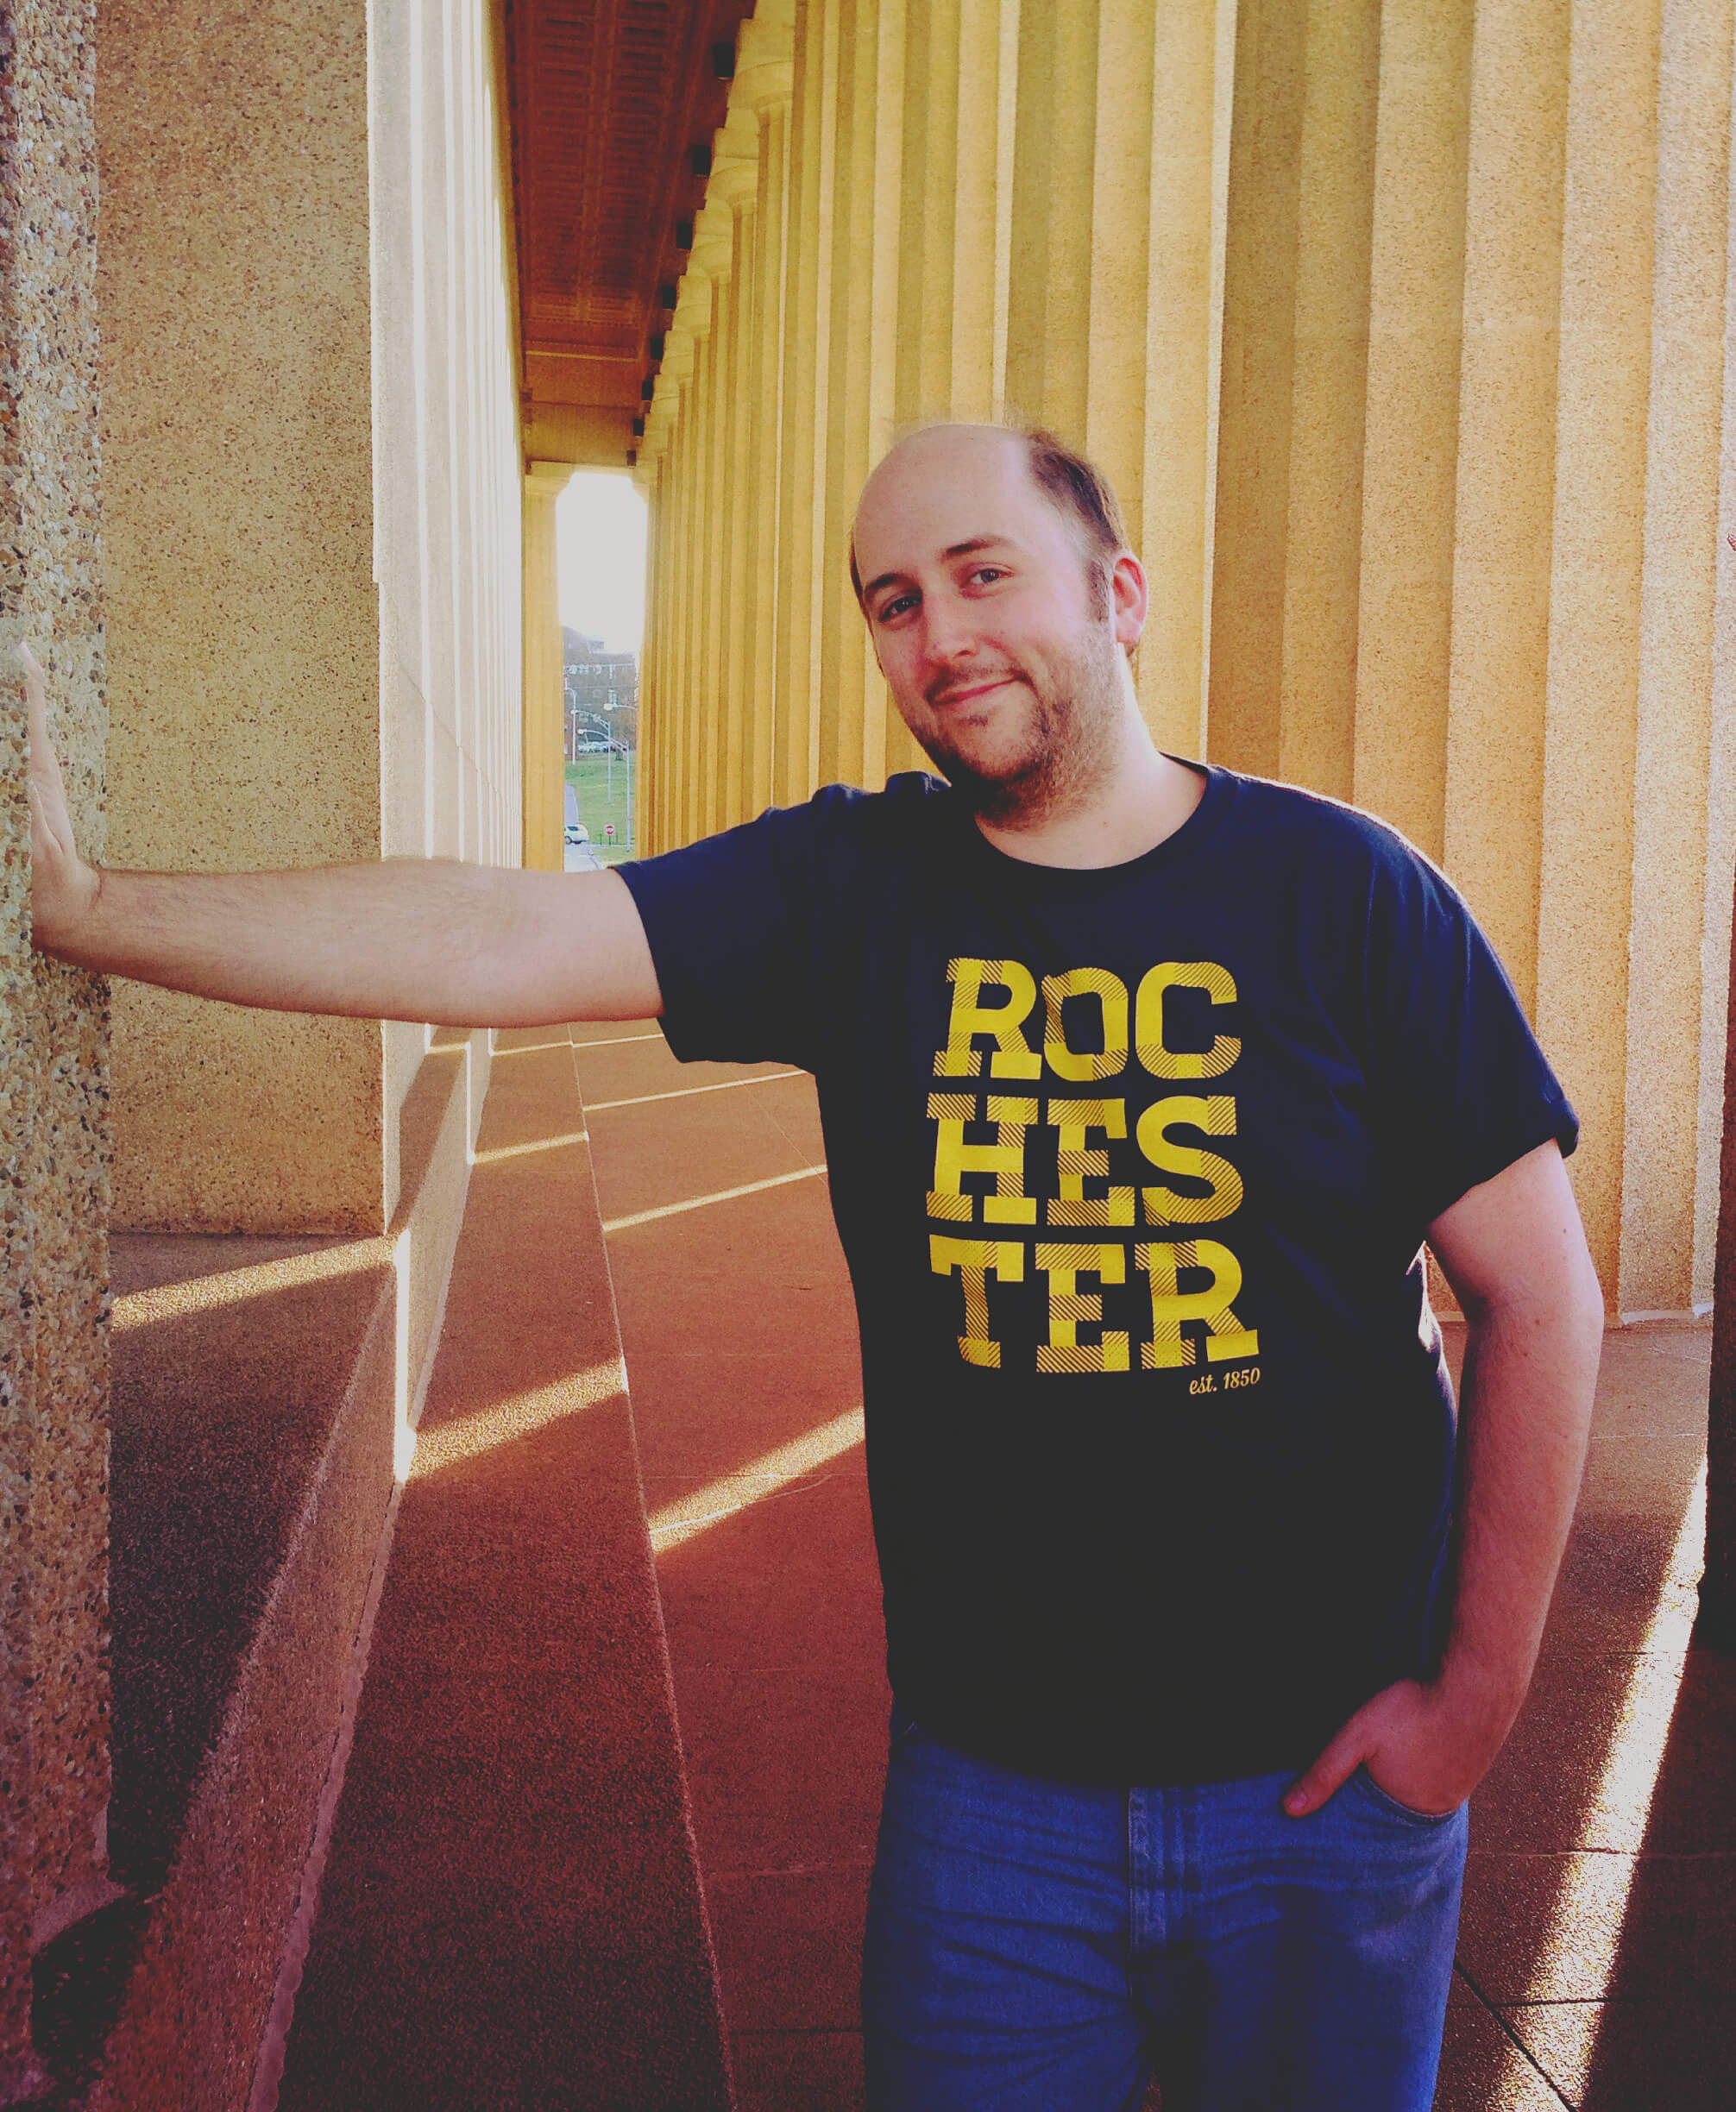 Rochester Fringe Creative Director Matt DeTurck is an advocate for the amazing local art community.